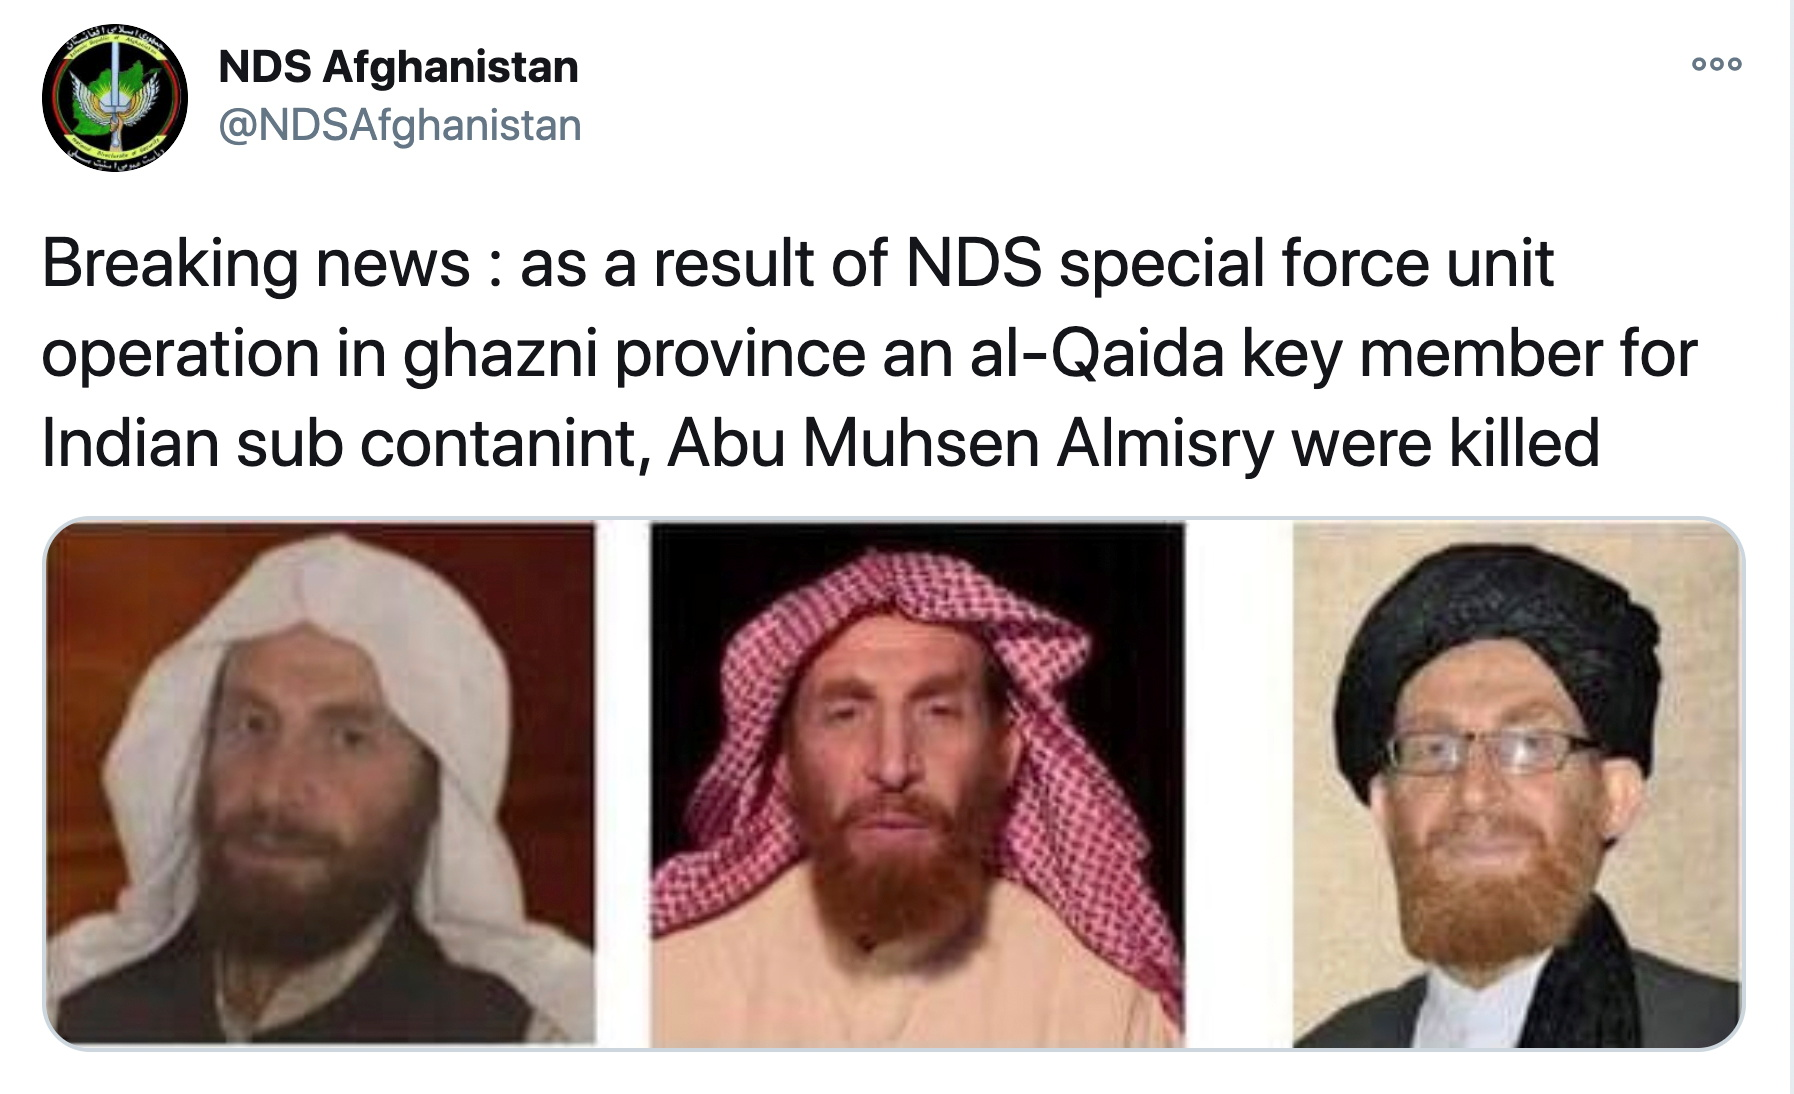 A tweet from NDS Afghanistan saying that they have killed Abu Muhsin Al-Masri in operations, accompanied by three profile photos of Al-Masri, is seen on NDS Afghanistan's Twitter account October 24, 2020. Photo: NDS Afghanistan via Twitter/via Reuters